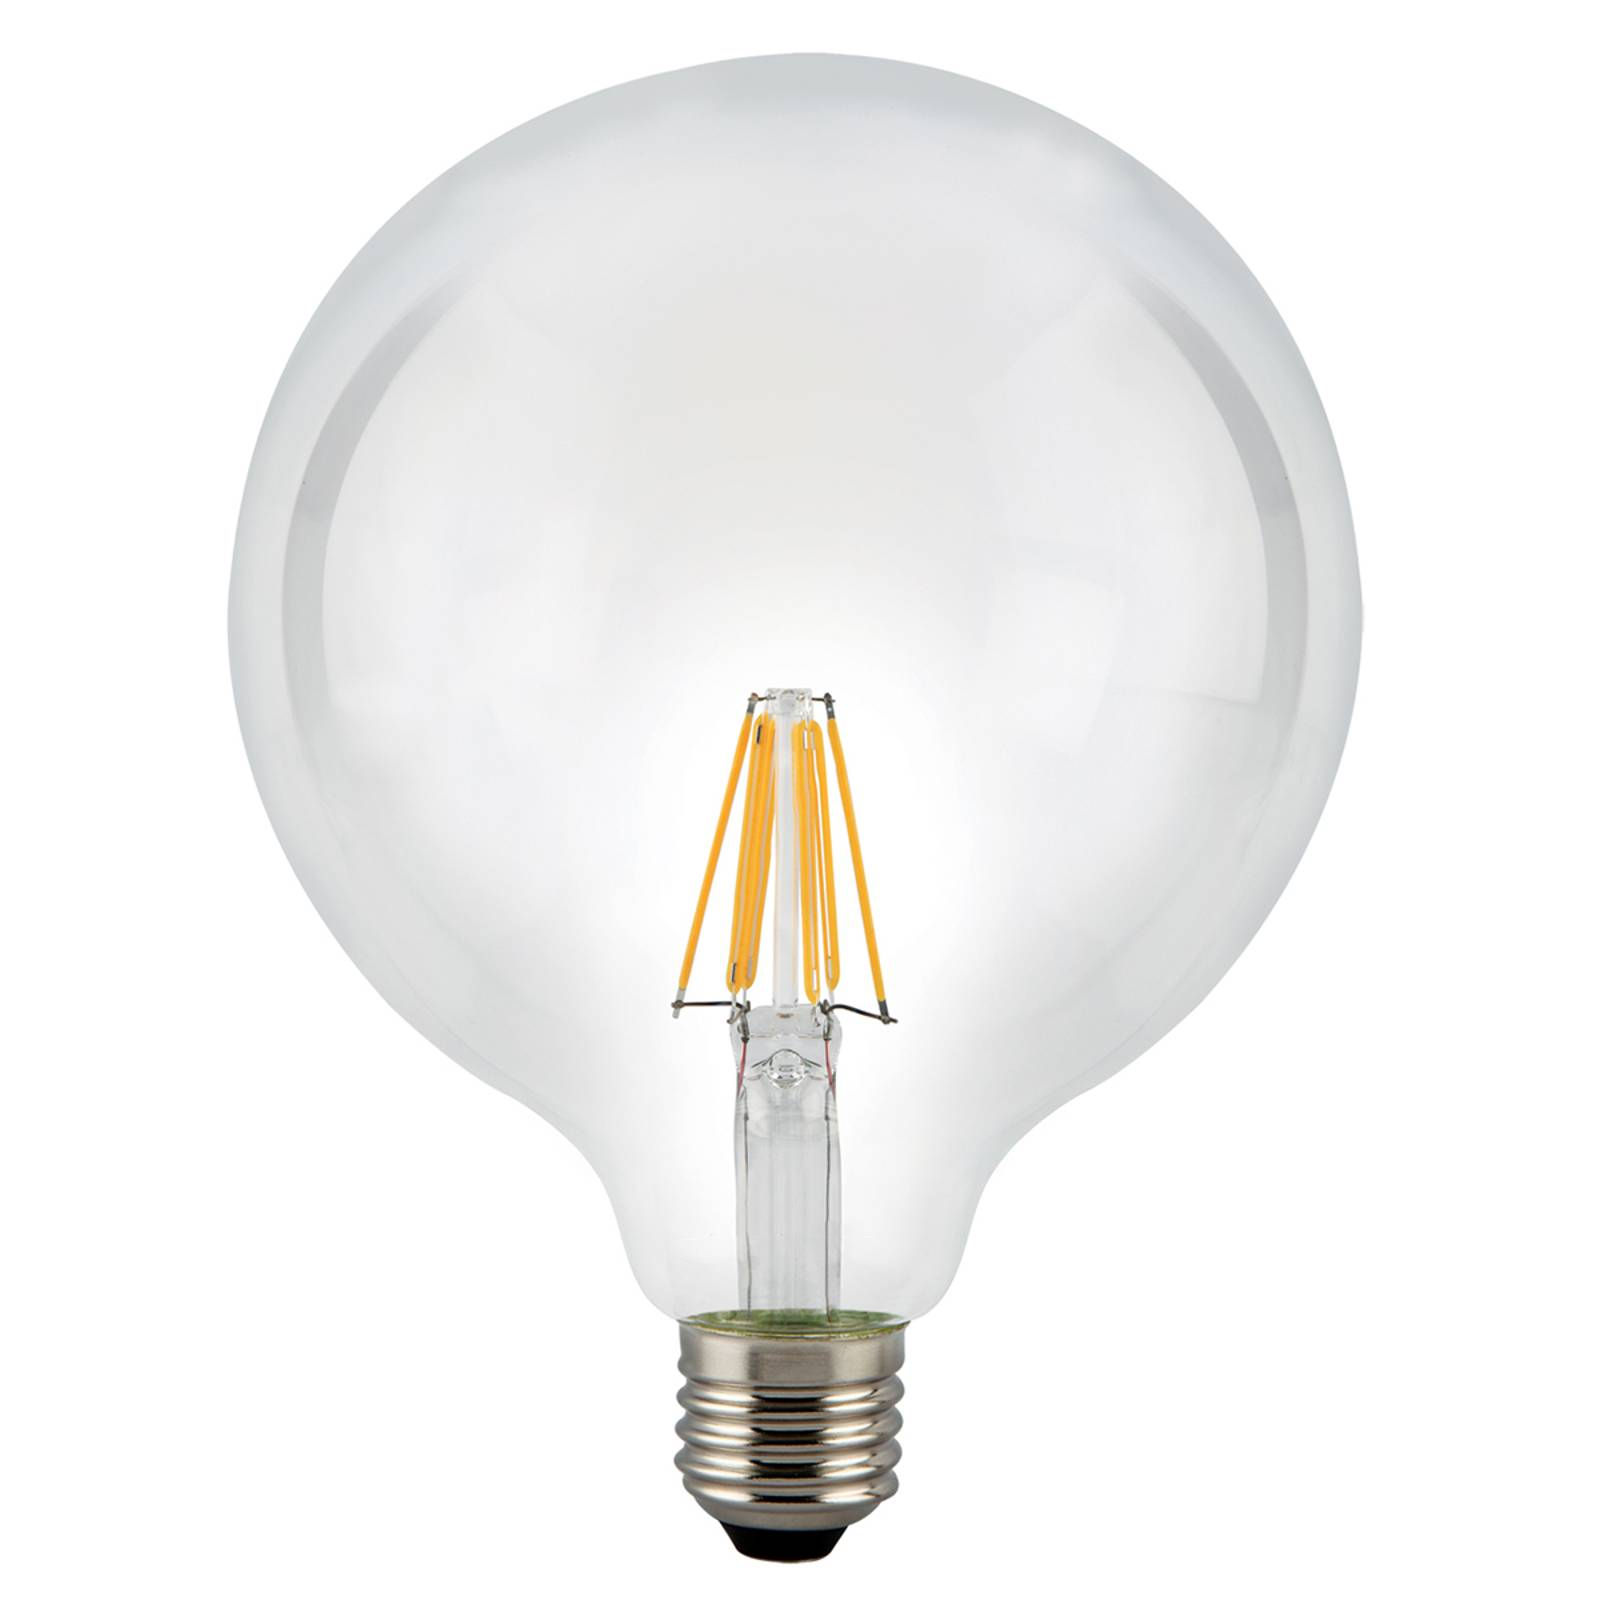 E27 7.5 W 827 LED globe bulb, clear from Stylvania